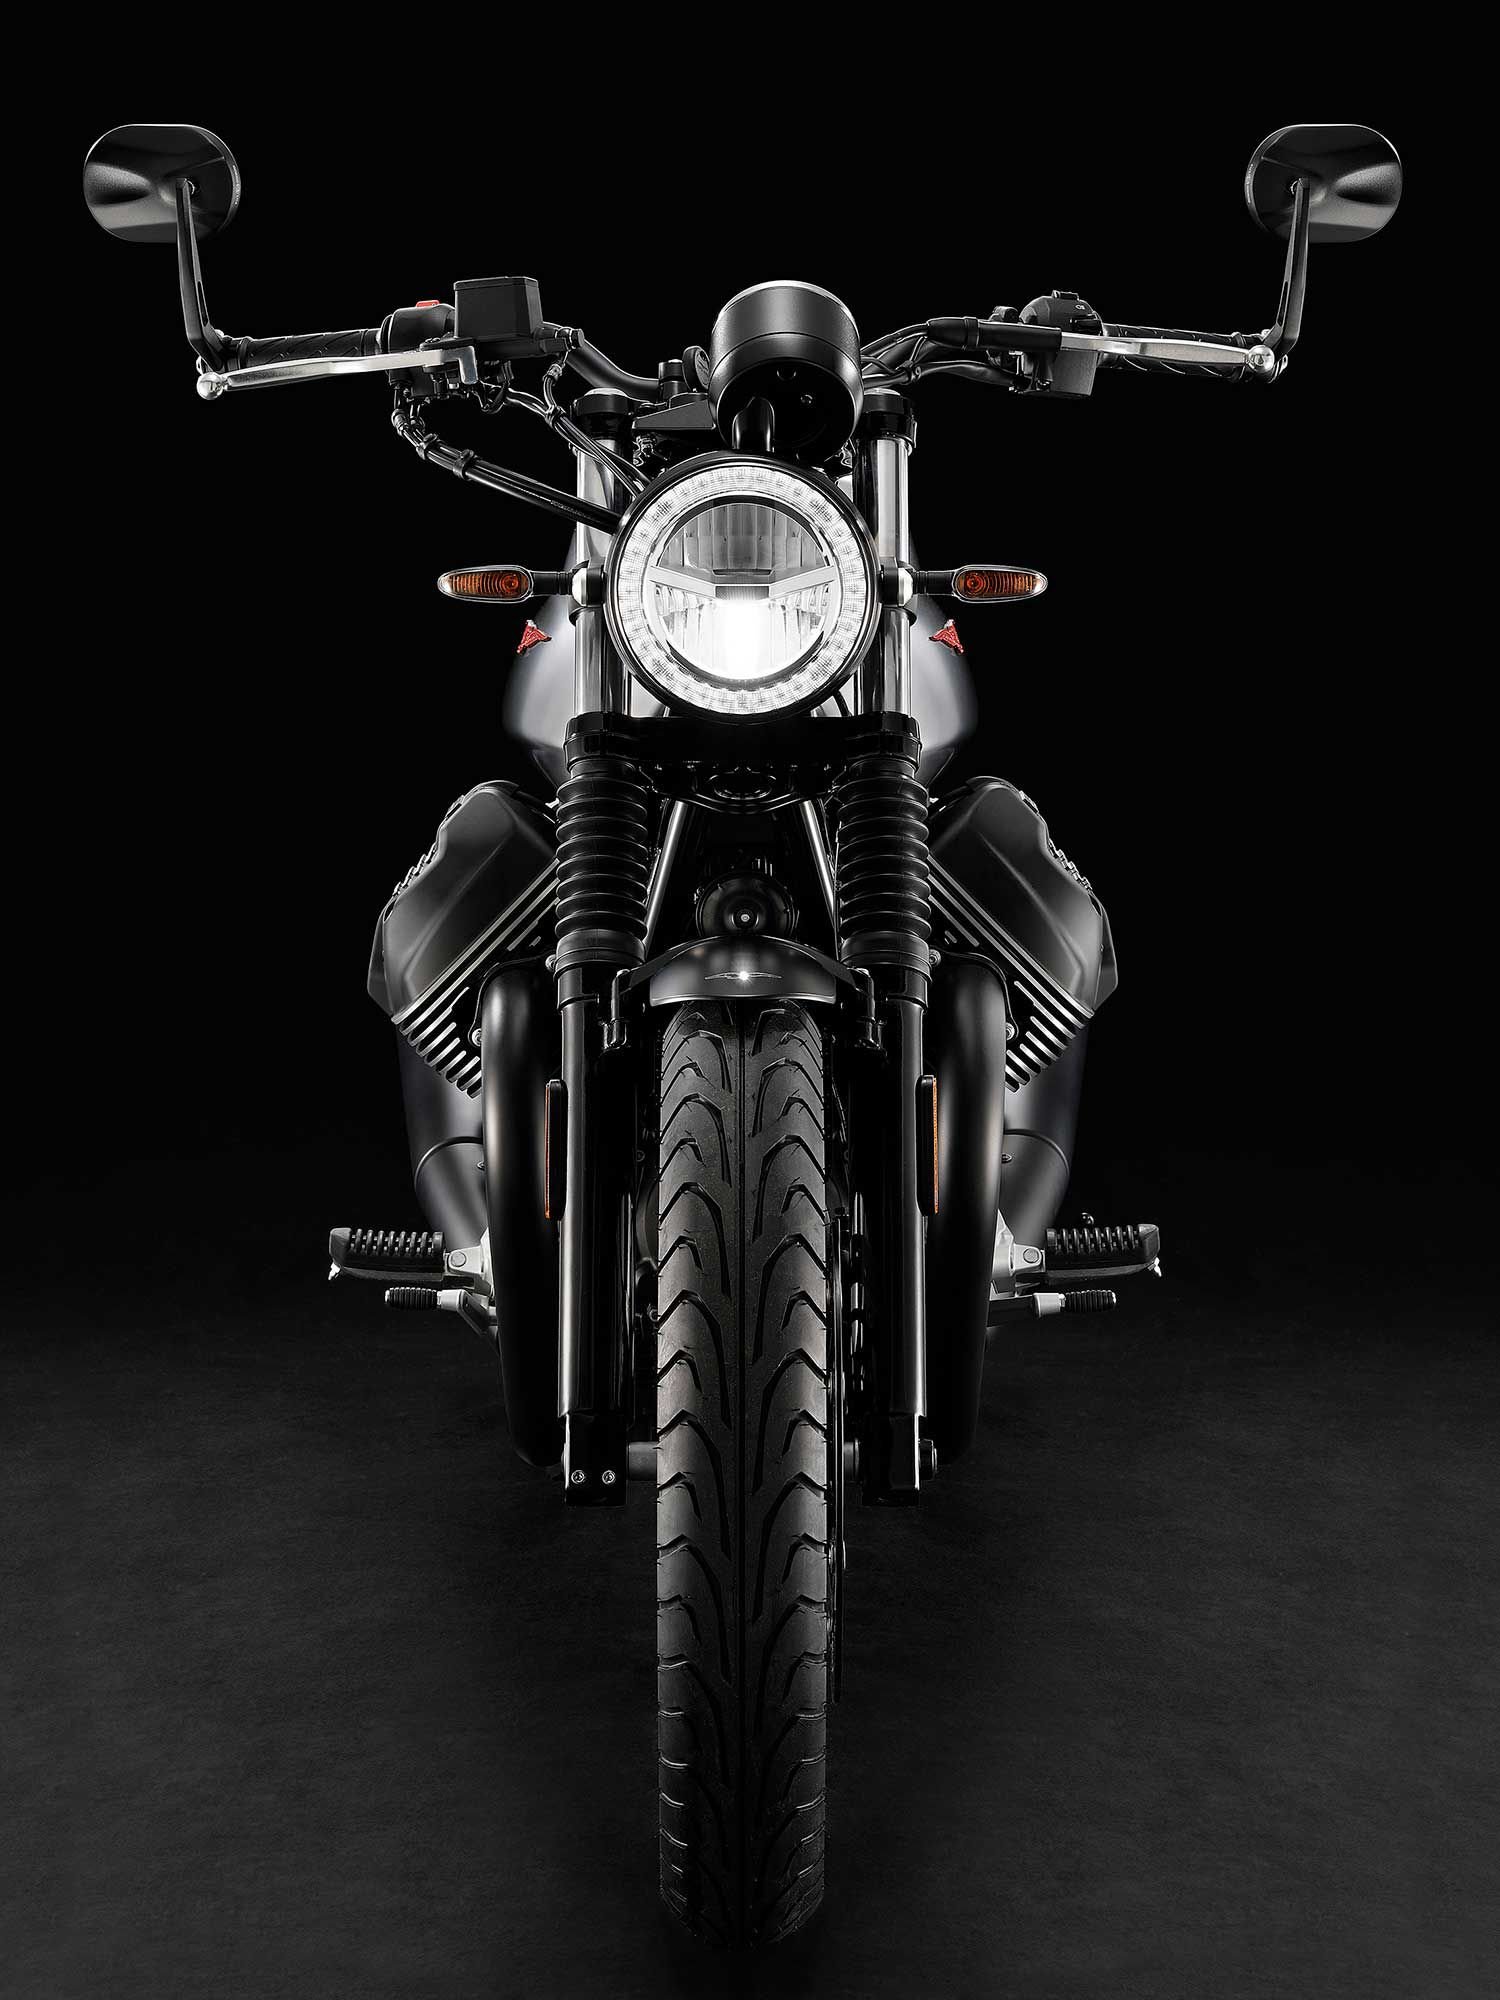 The Stone S, and Moto Guzzi's other new announcement, the Racer 10th Anniversary, use Dunlop Arrowmax Streetsmart tires for better performance.